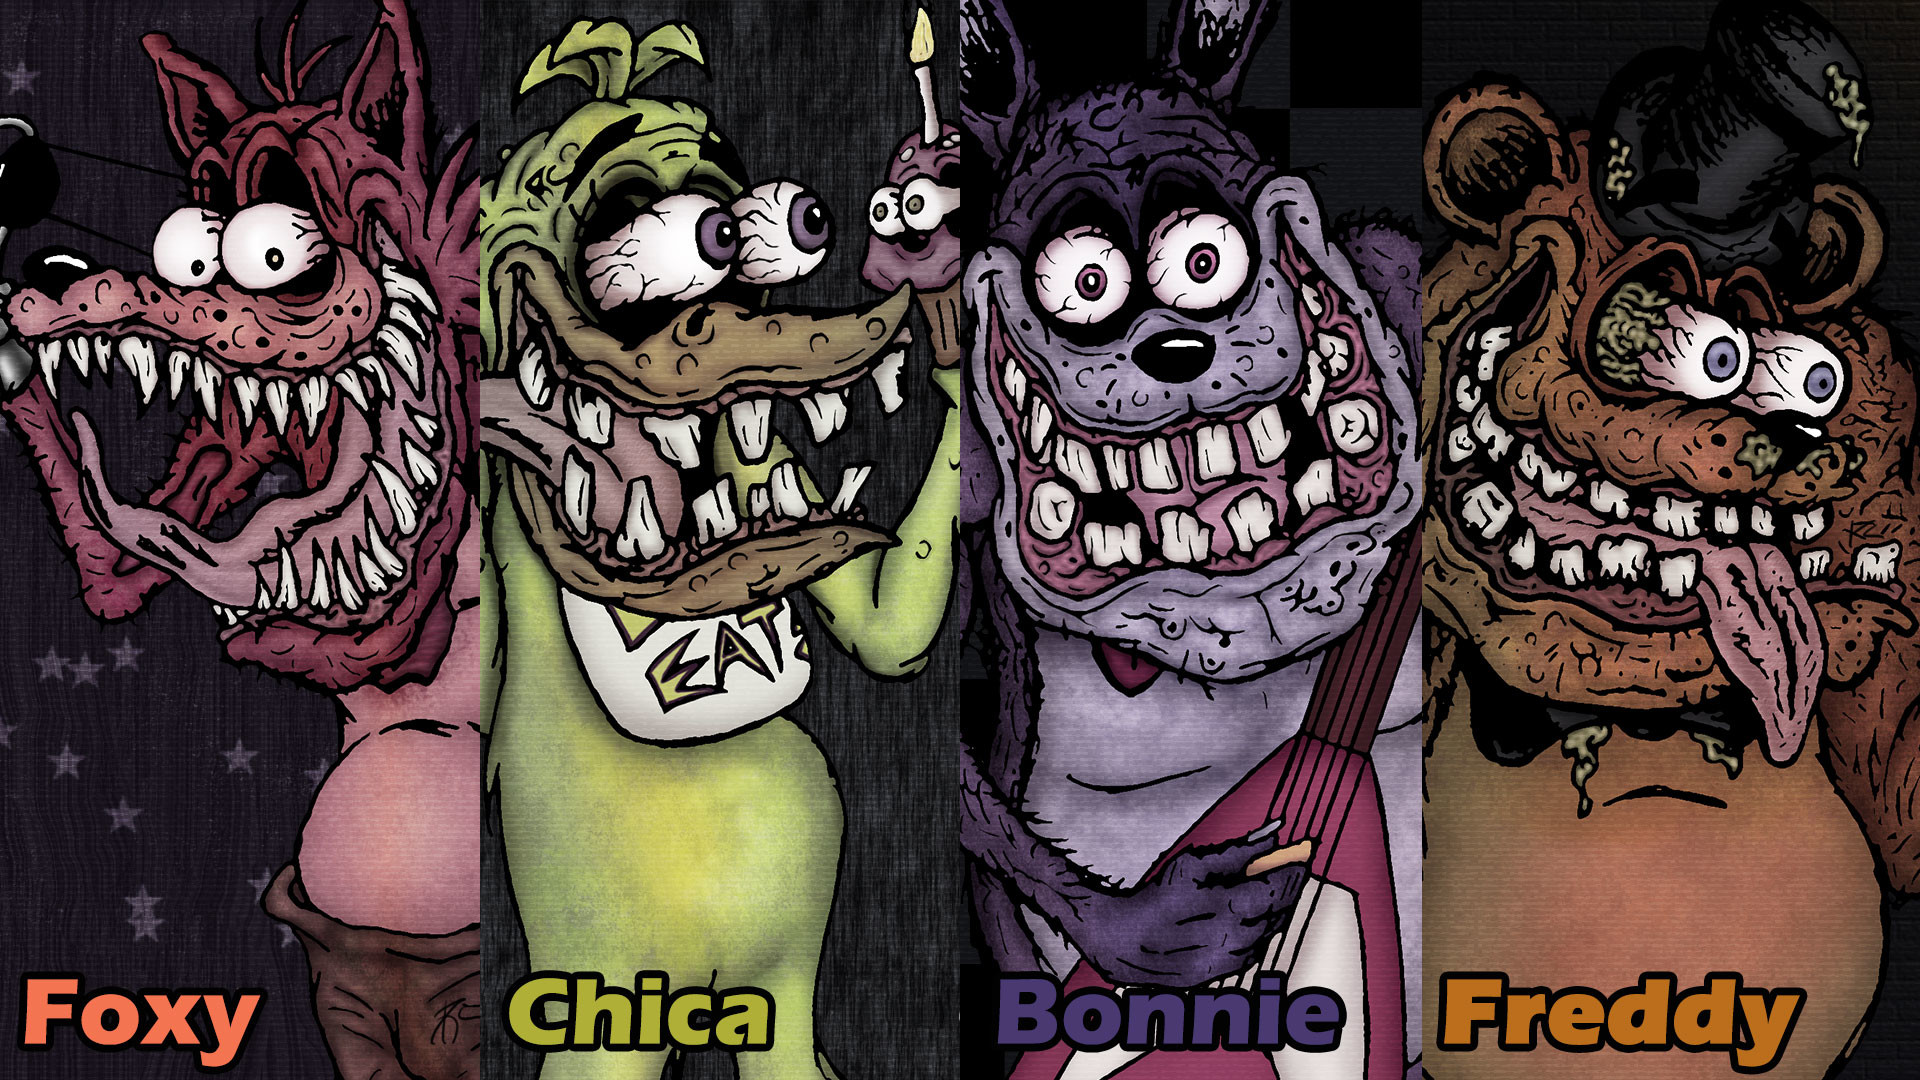 … Five Nights at Freddy – Ed Roth Style (Wallpaper) by SestrenNK